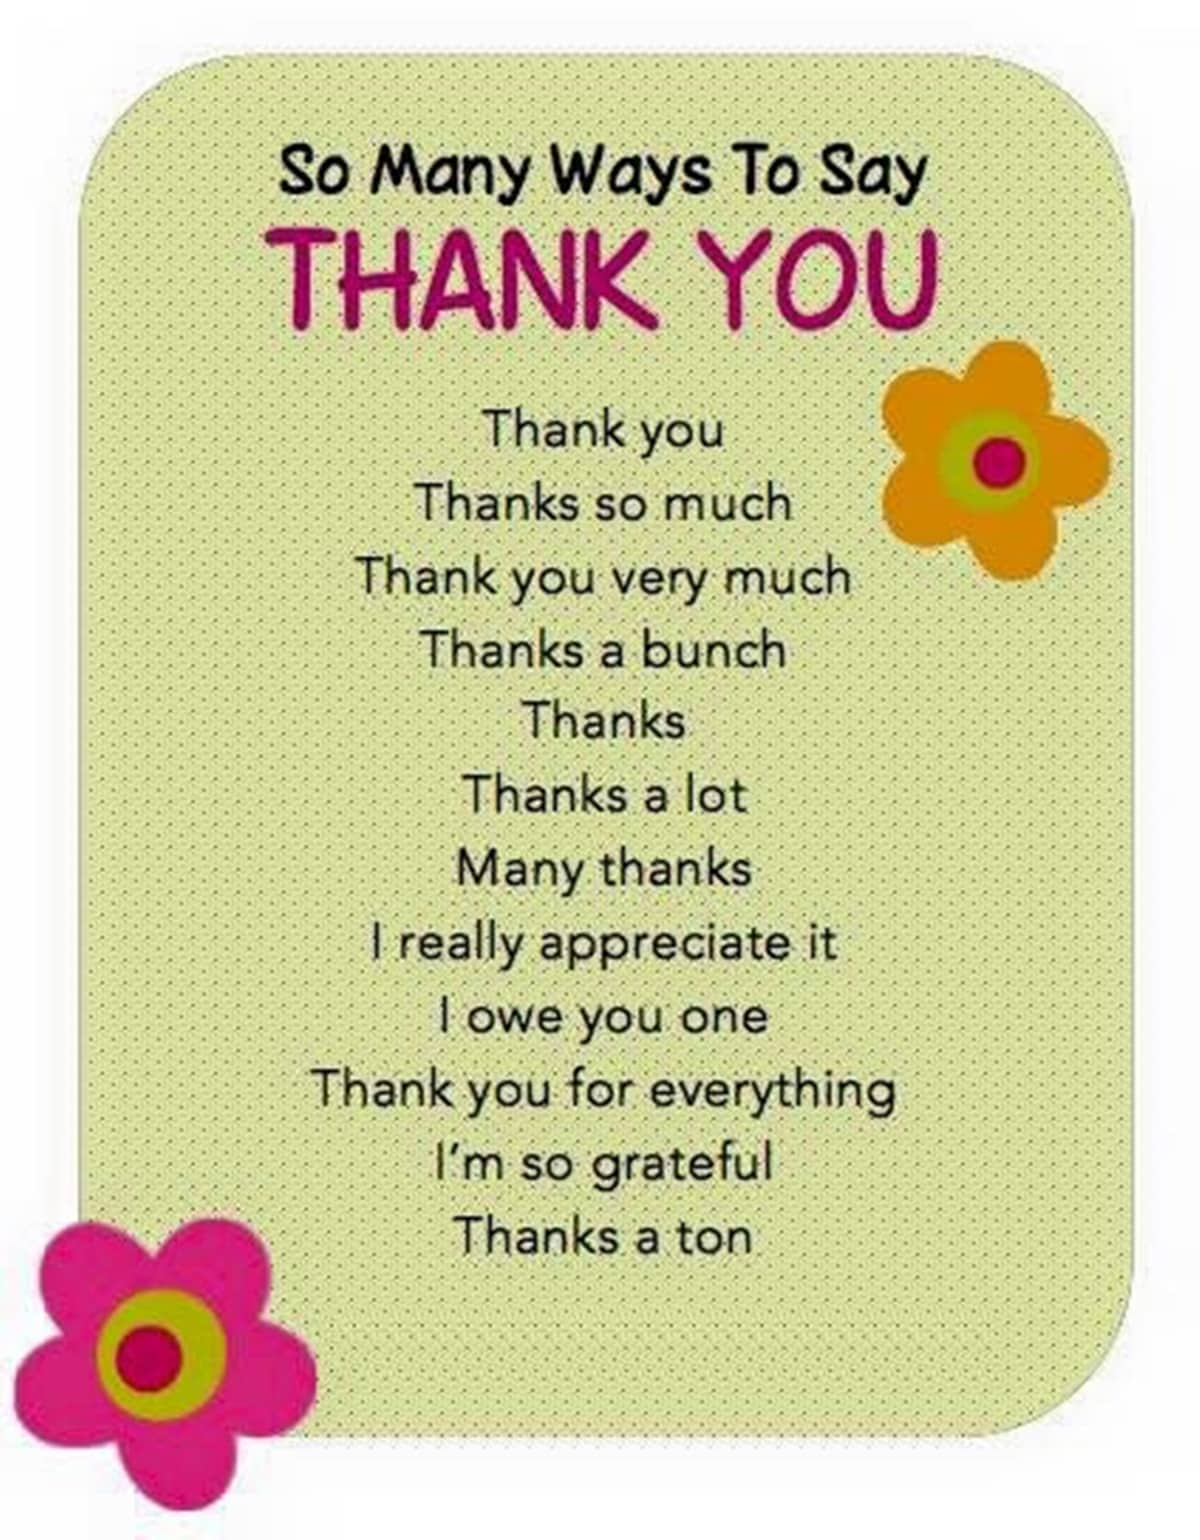 30+ Delightful Ways to Say THANK YOU in English